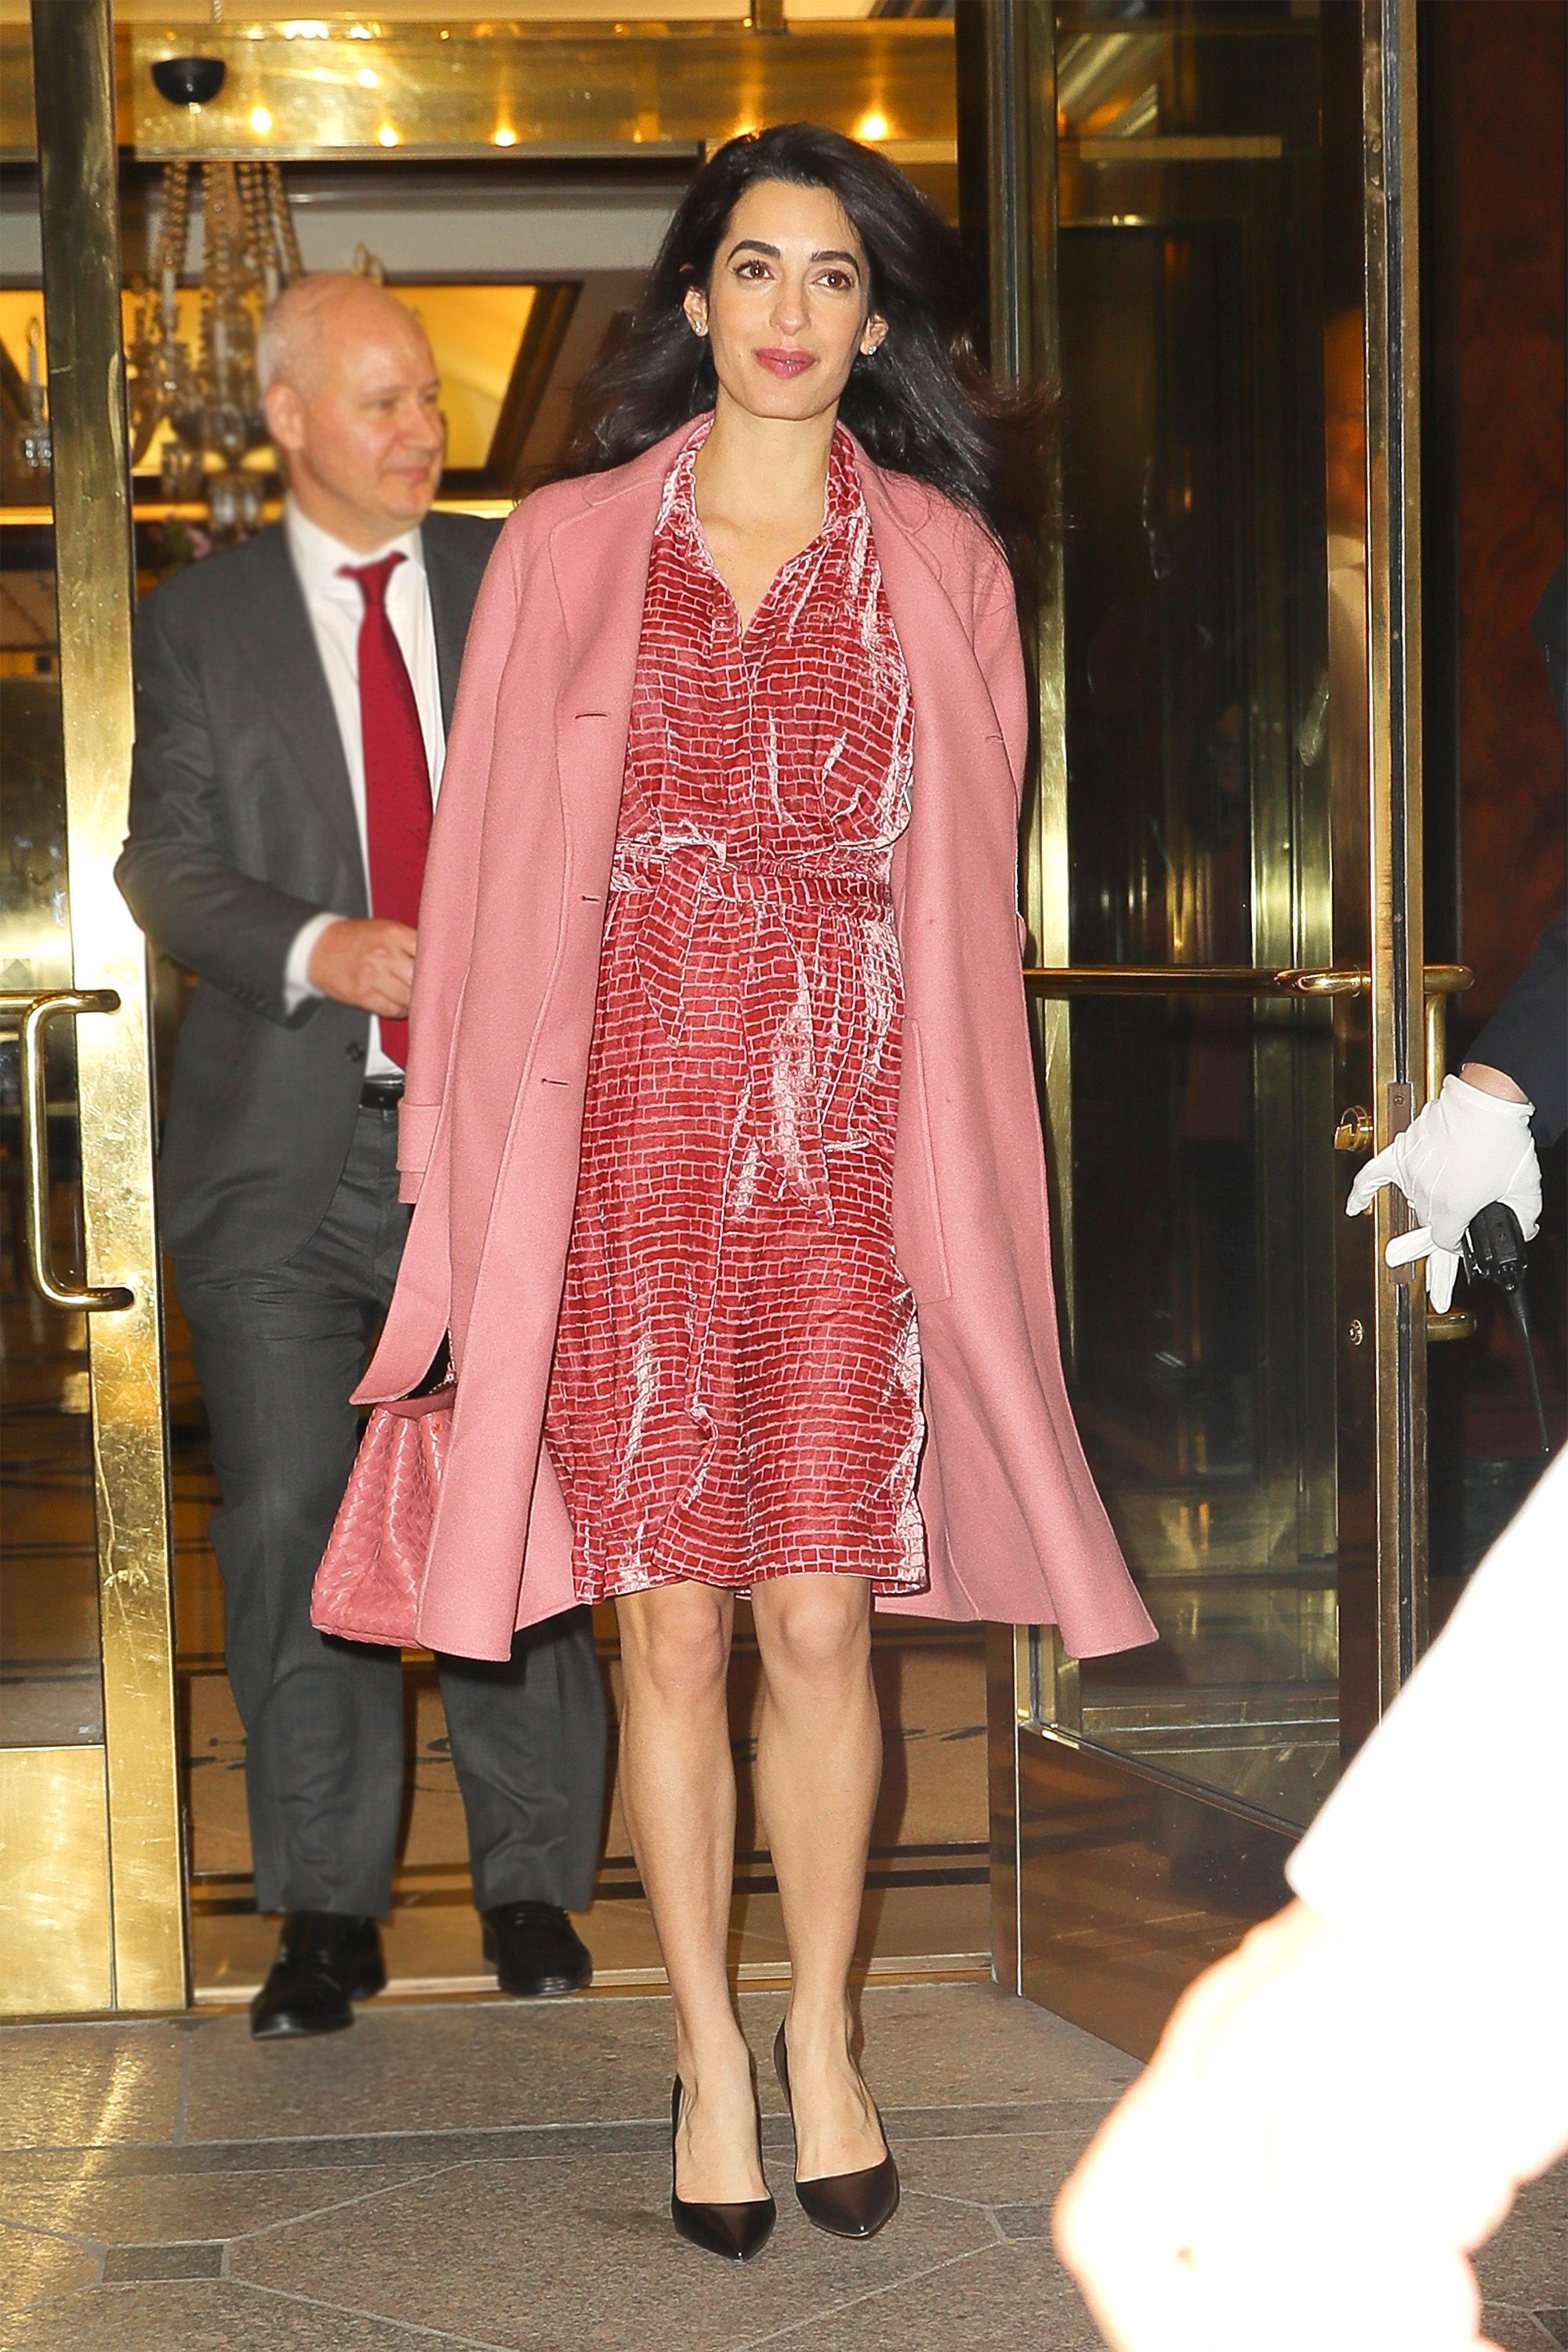 Amal Clooney's Best Looks - Pictures of Amal Clooney's Top Fashion